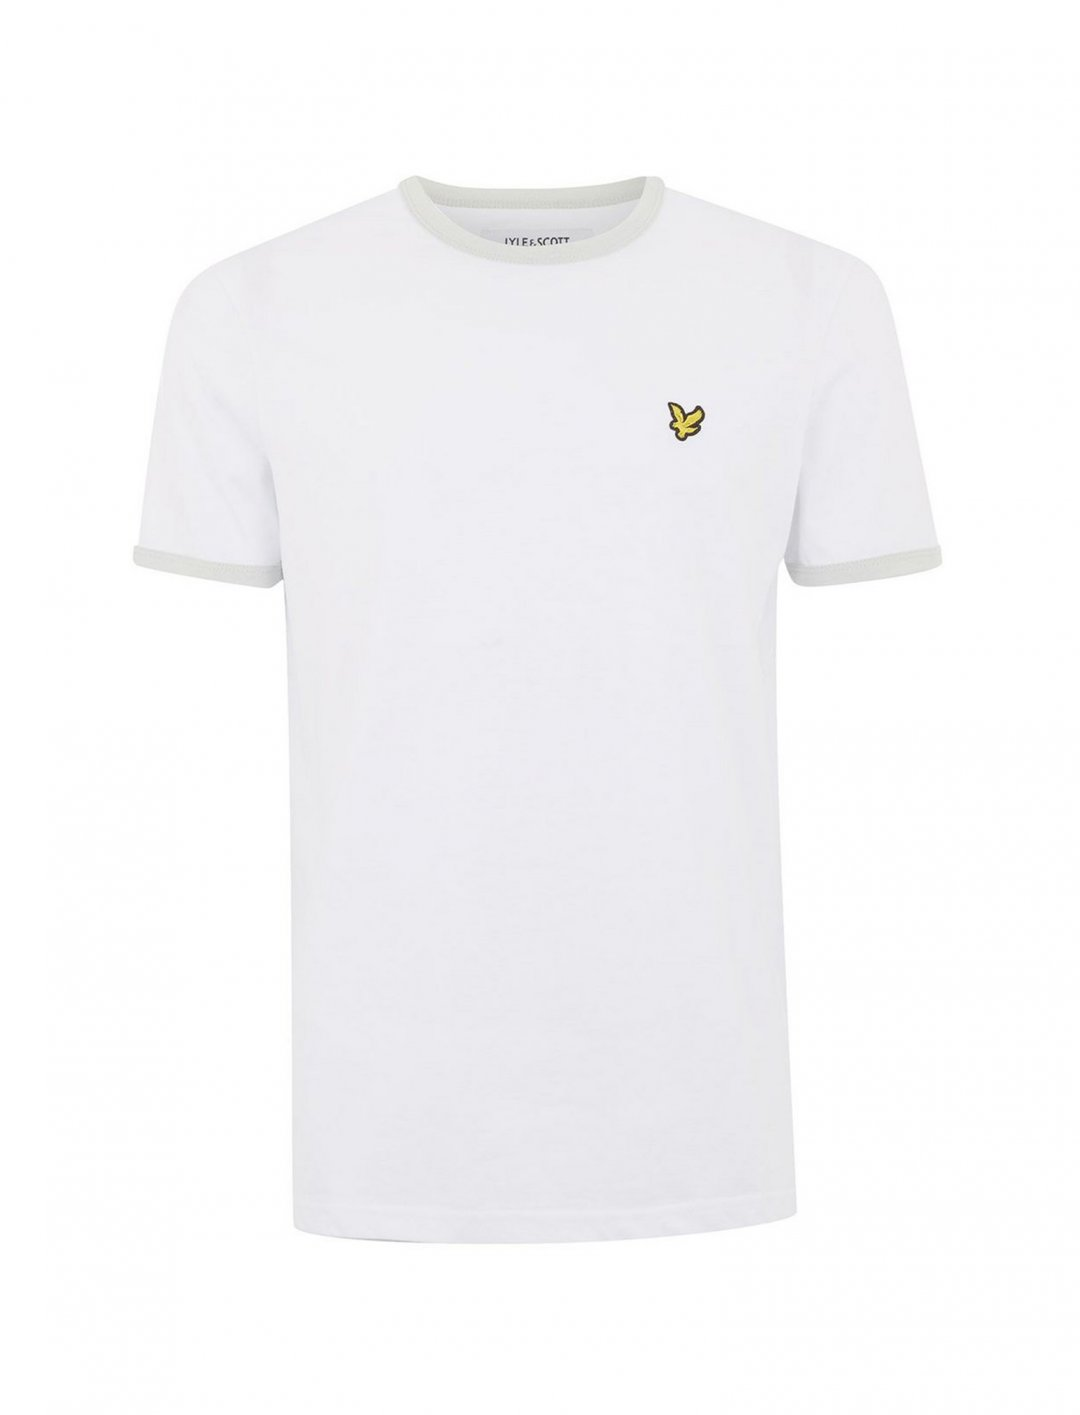 "Topman Badge T-Shirt {""id"":5,""product_section_id"":1,""name"":""Clothing"",""order"":5} Topman"